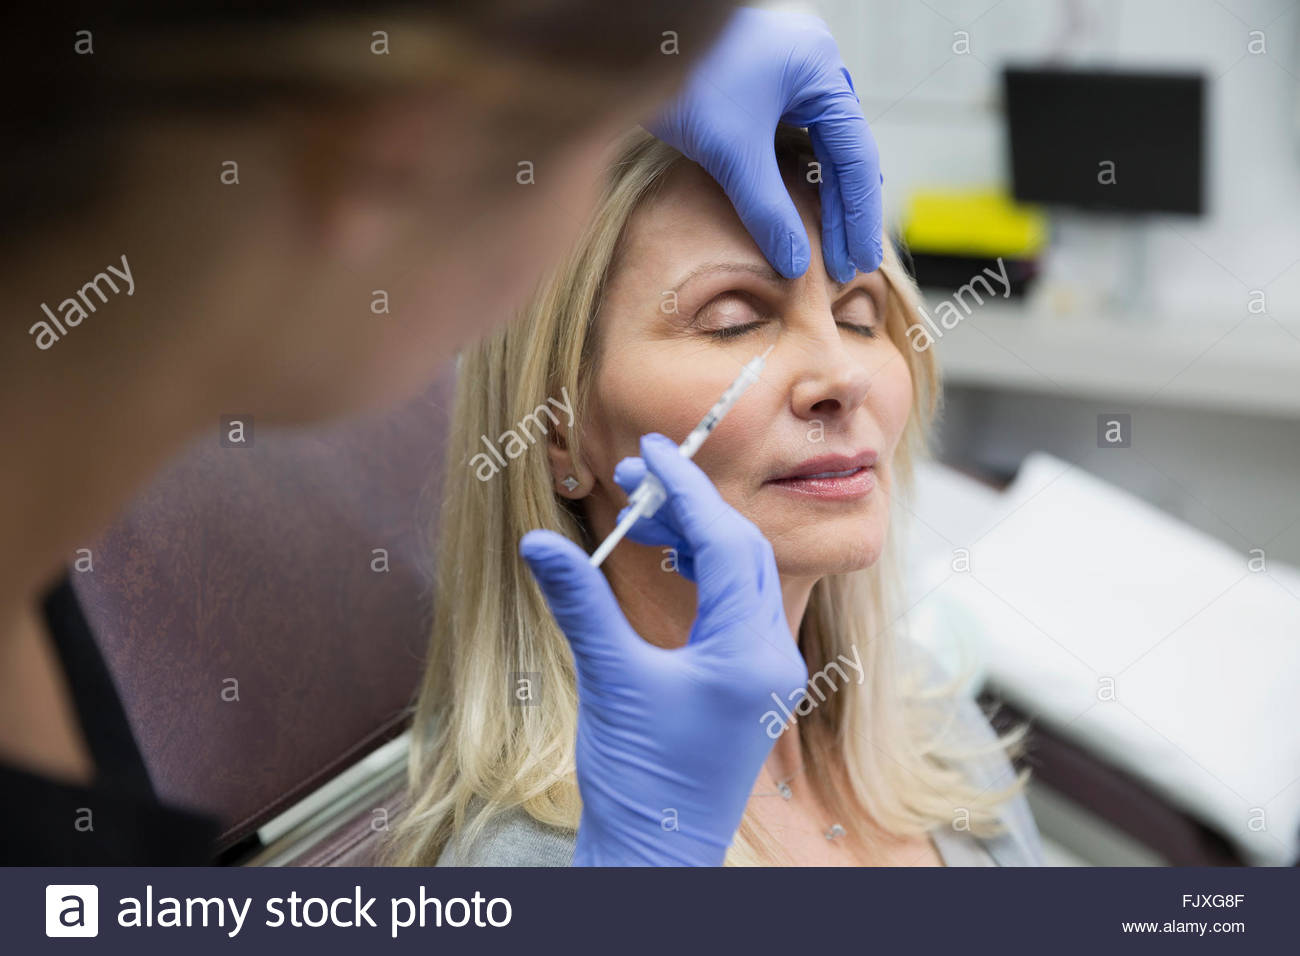 Technician giving woman botox injection side of nose - Stock Image